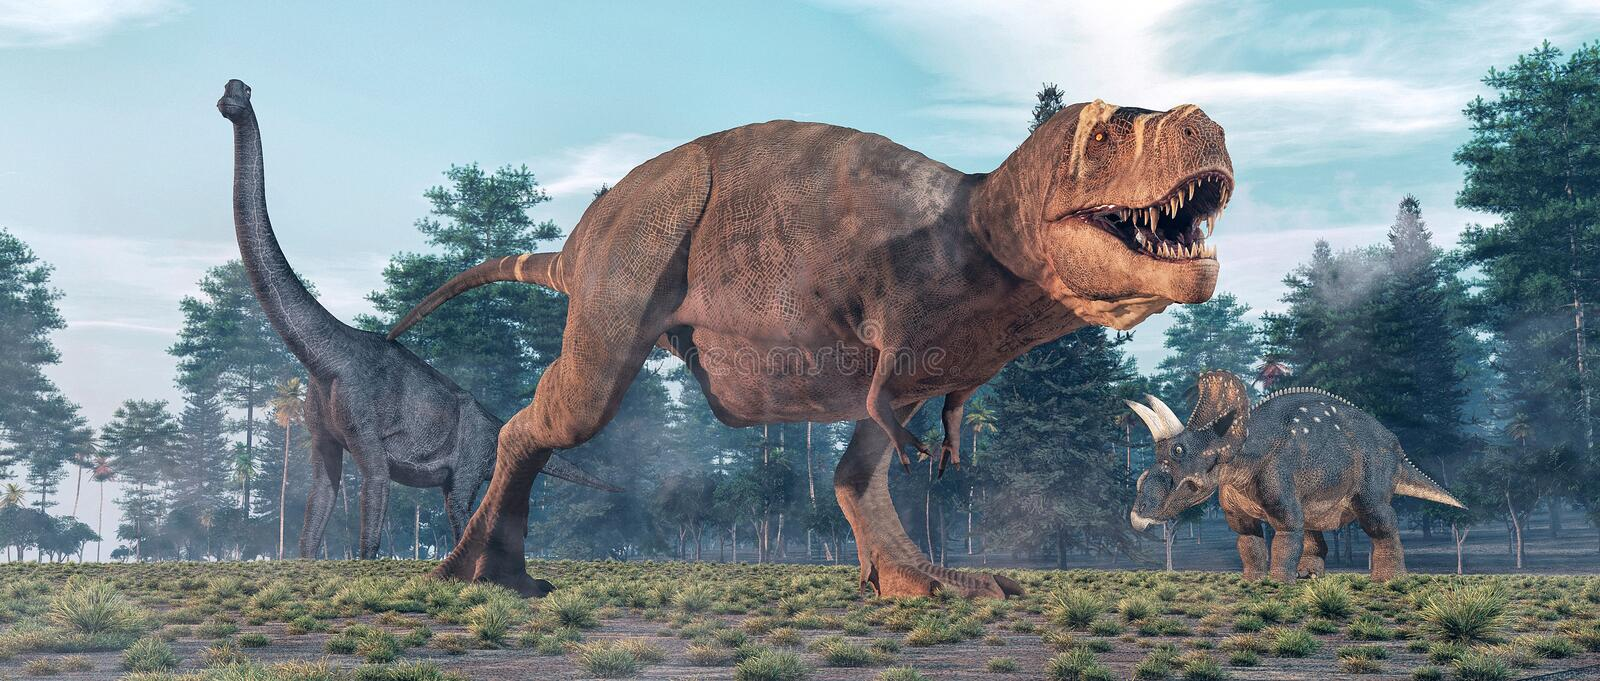 Tyrannosaurus Rex in de Wildernis royalty-vrije illustratie